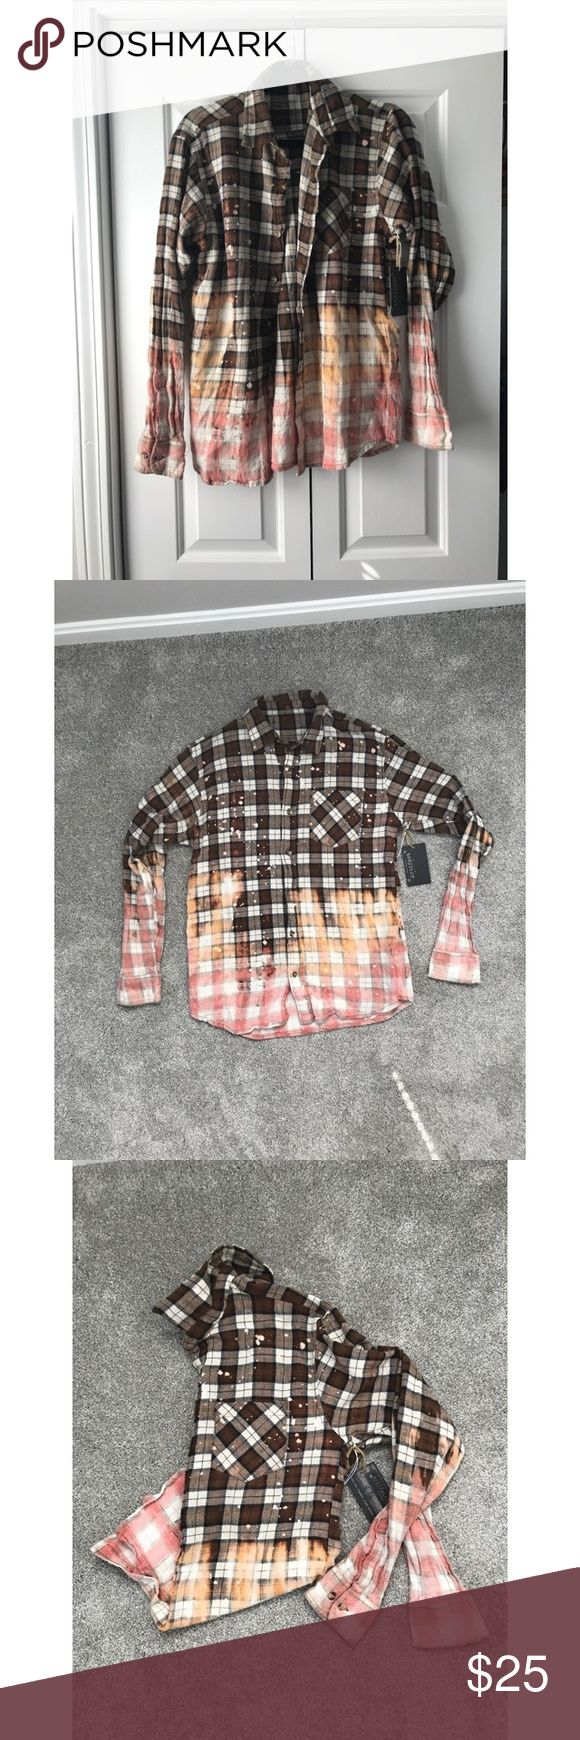 BNWT!  flannel shirt Brand new with tags! (from boutique) Made from recycled materials Hand dipped flannel brown going to peach/pink and white! So cute and unique!! Definitely one of kind! I got an XL because it runs small so it's more like a medium/large artifact Tops Button Down Shirts